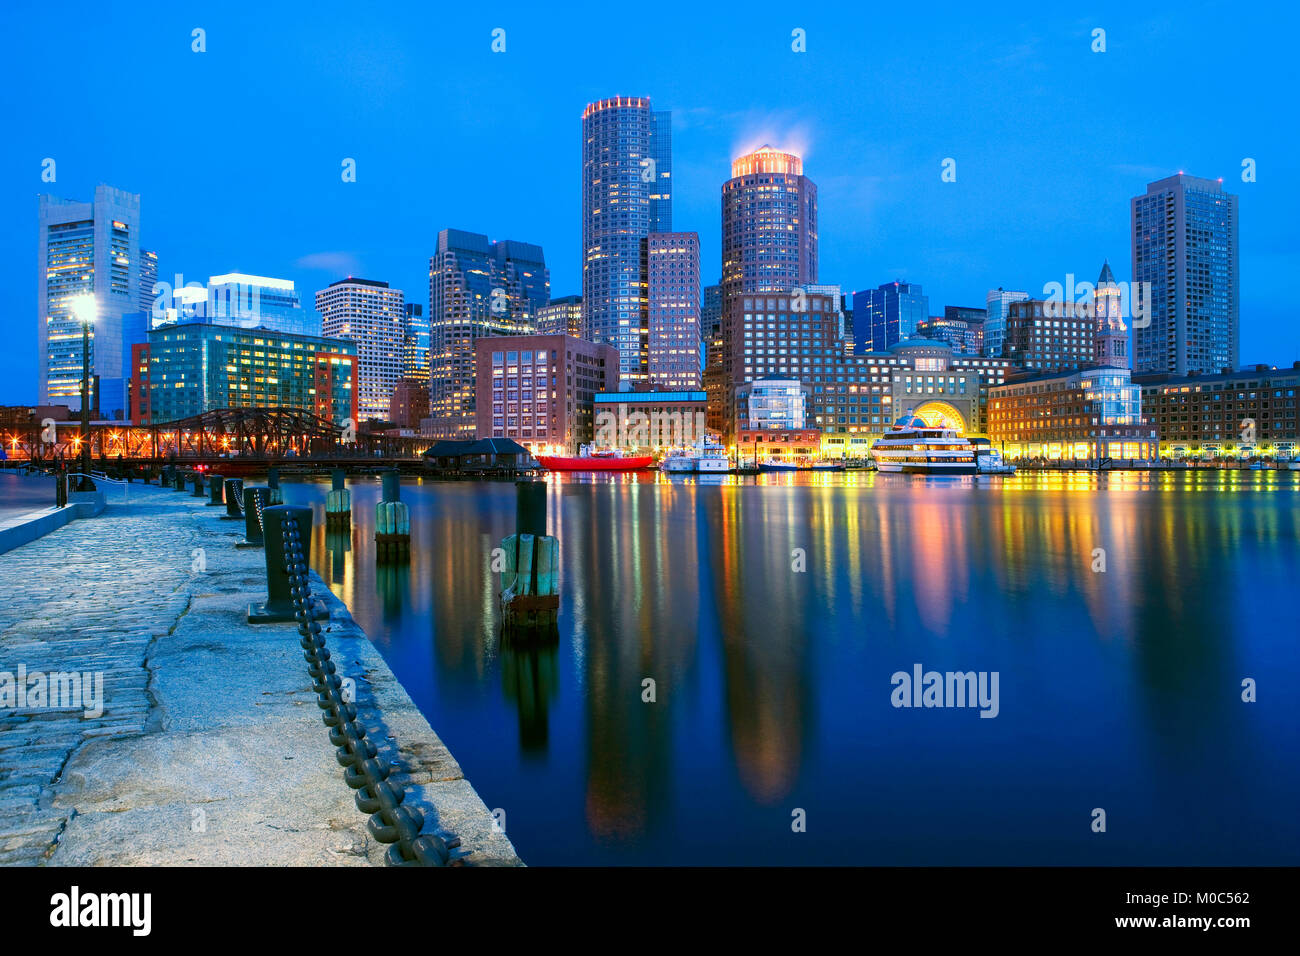 Inner harbour, Boston, Massachusetts, USA - Stock Image